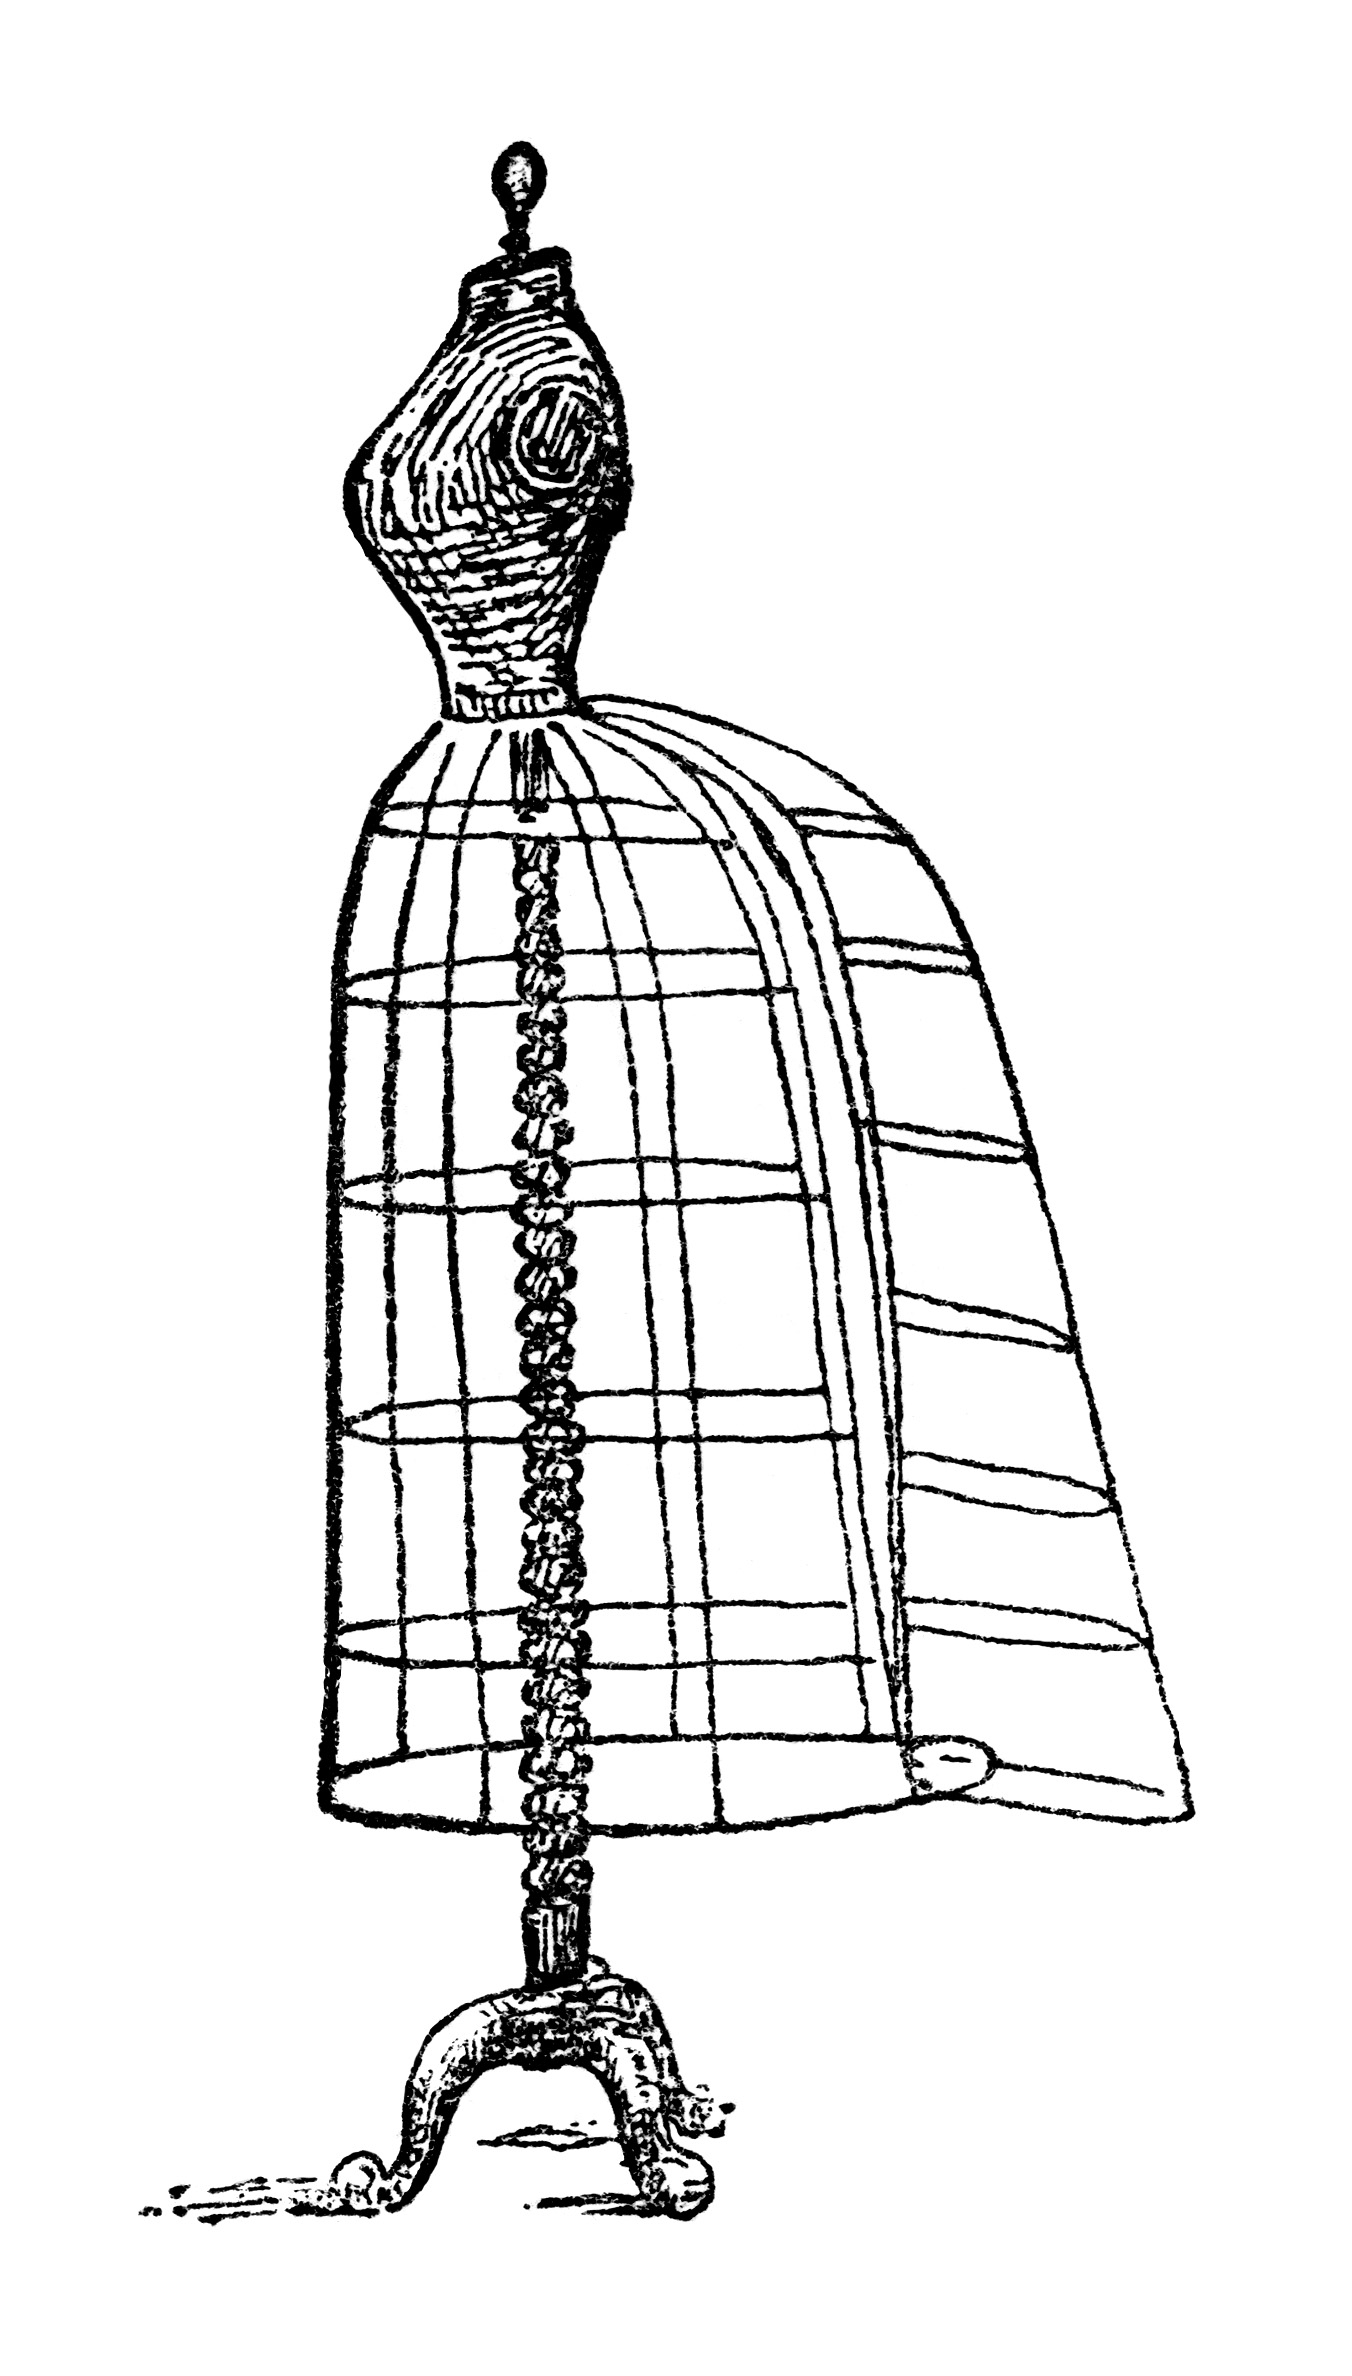 Sewing Clipart Black And White | Free download on ClipArtMag